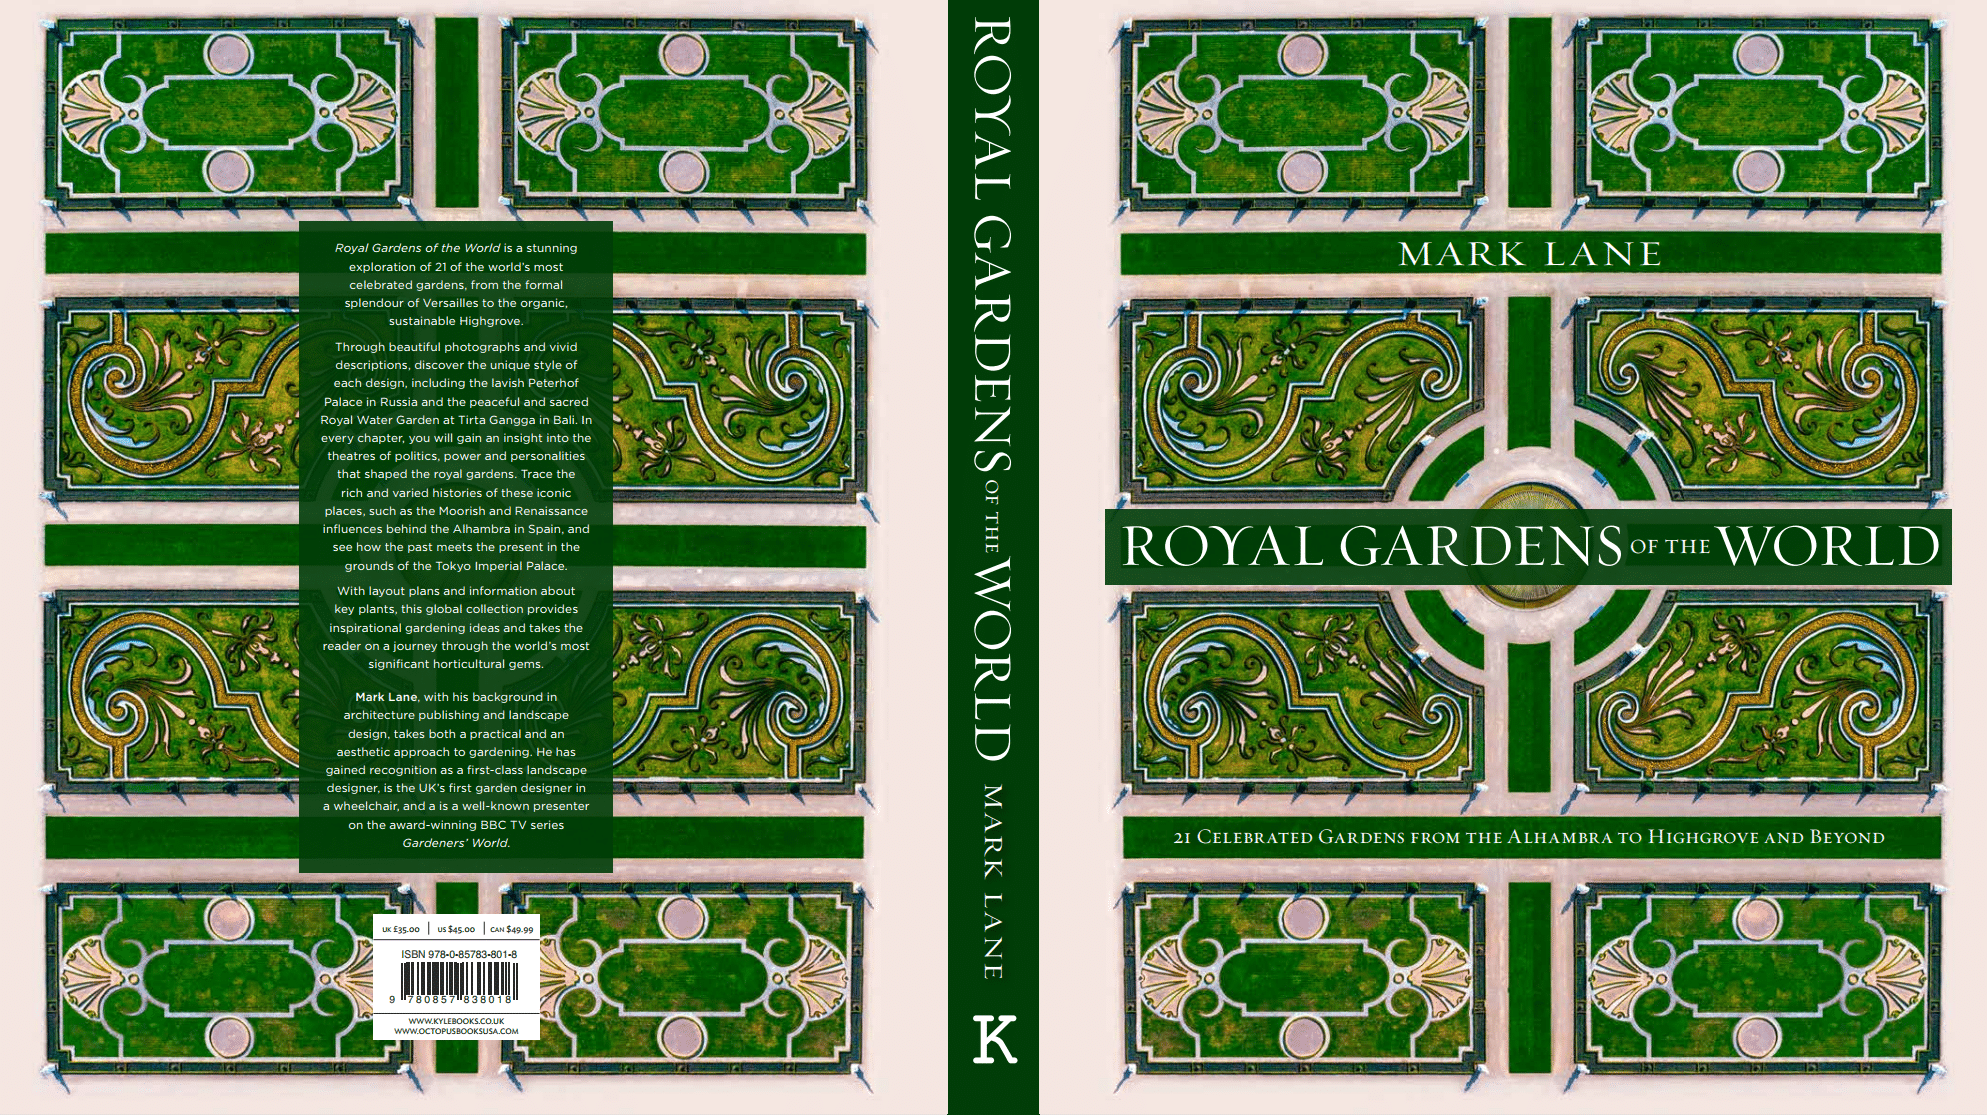 Royal Gardens of the World, Mark Lane, Kyle Books, Cover